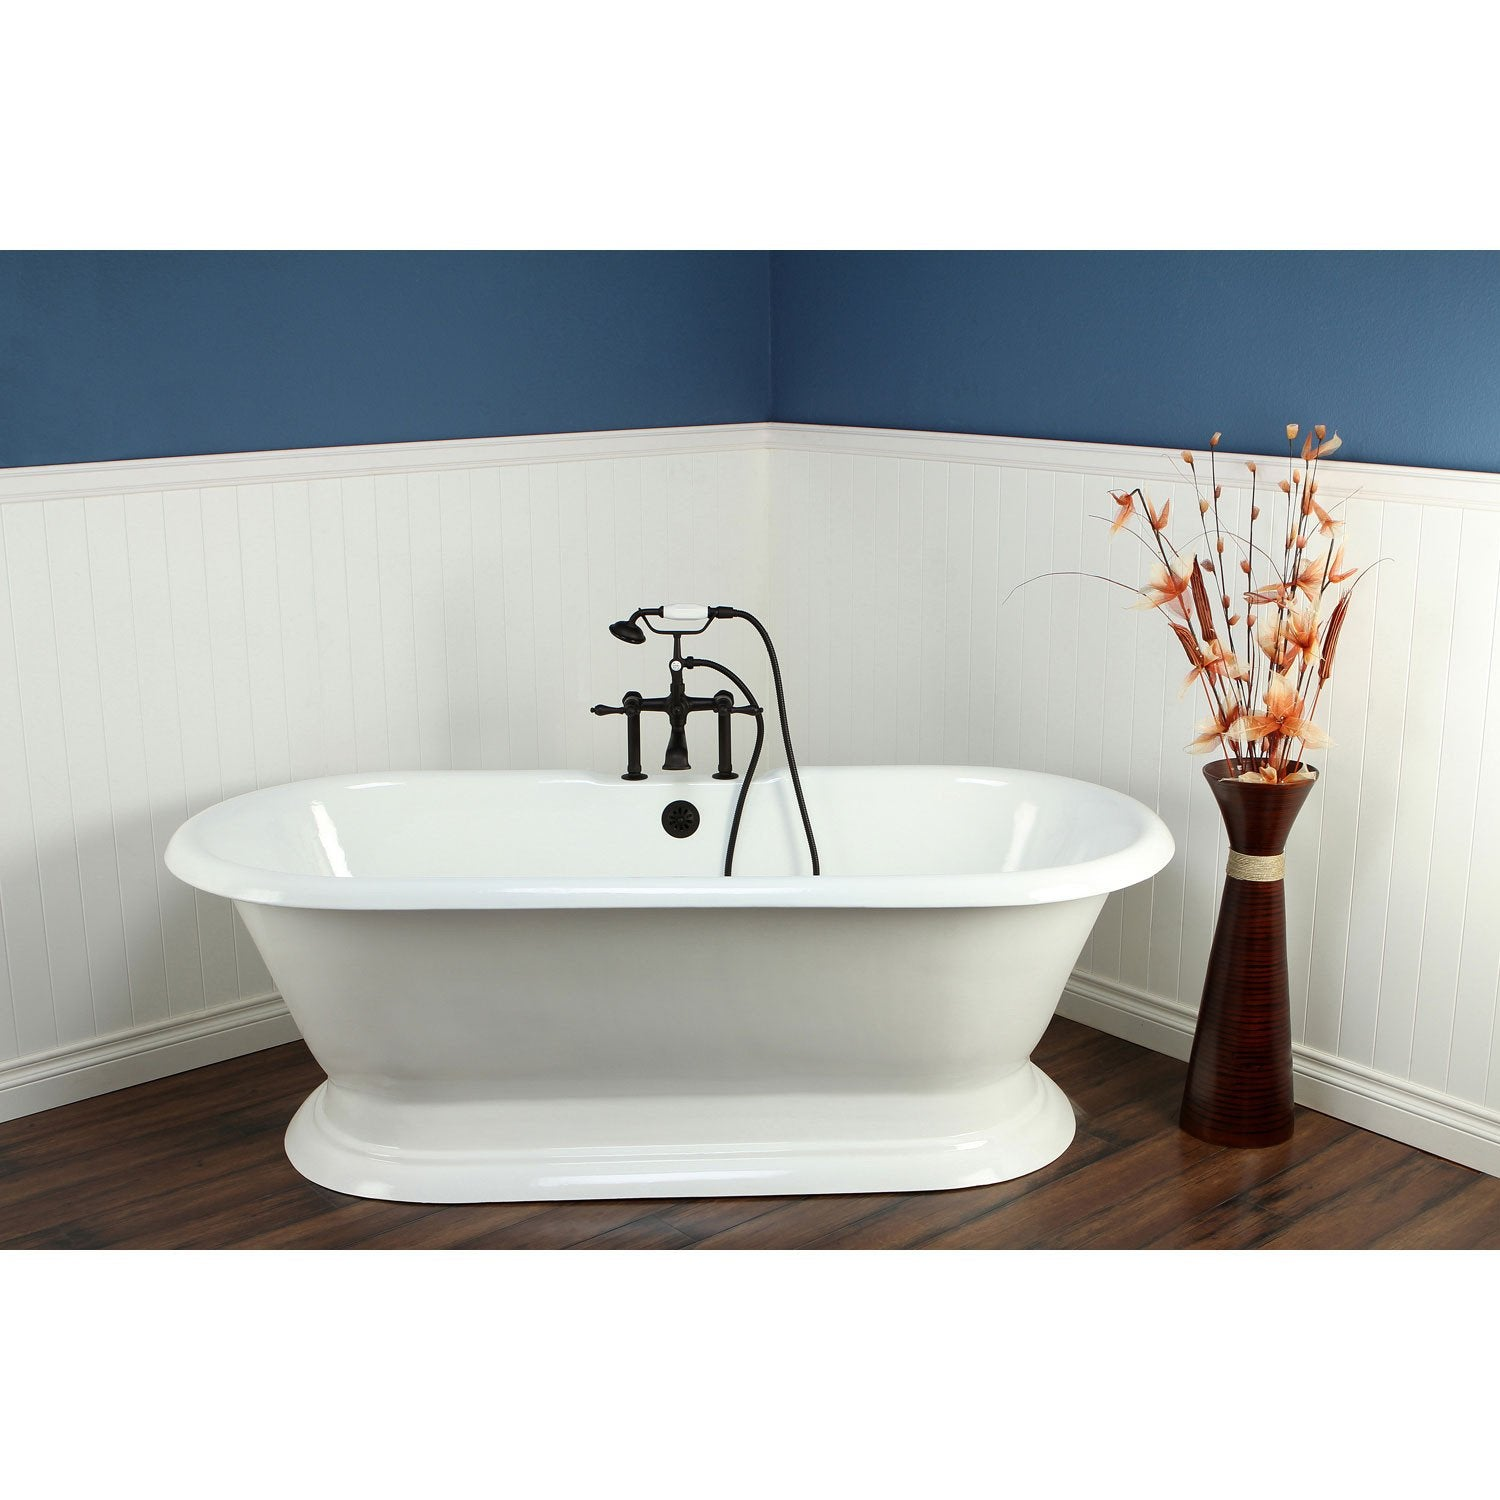 "72"" Freestanding Tub with Oil Rubbed Bronze Tub Faucet & Hardware Package CTP29"